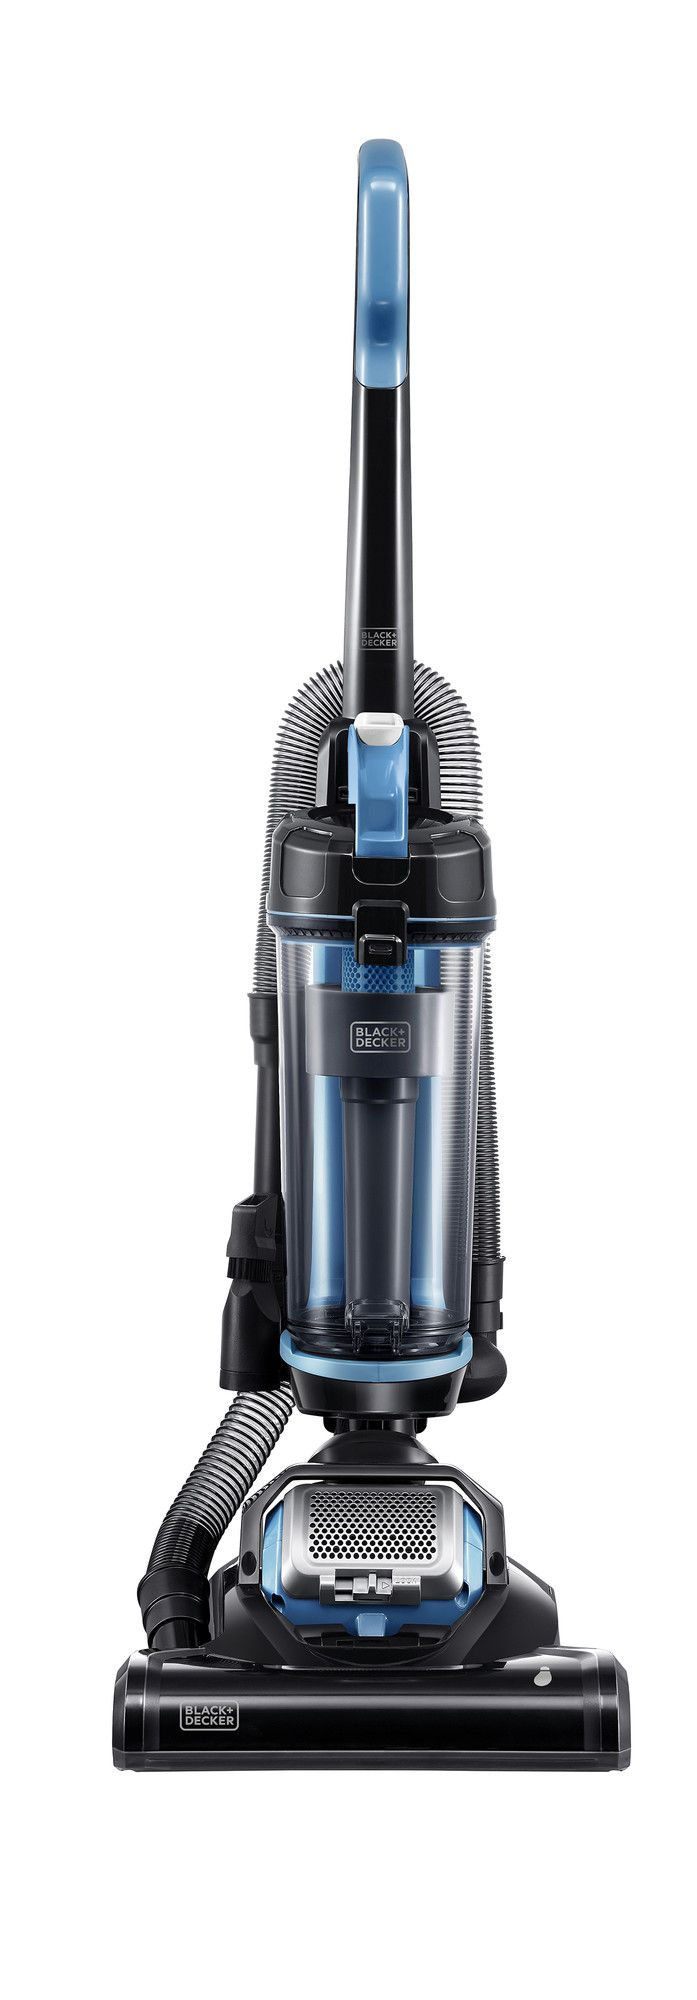 http://www.phomz.com/category/Vacuum-Cleaner/ Airswivel Ultra Light Weight…